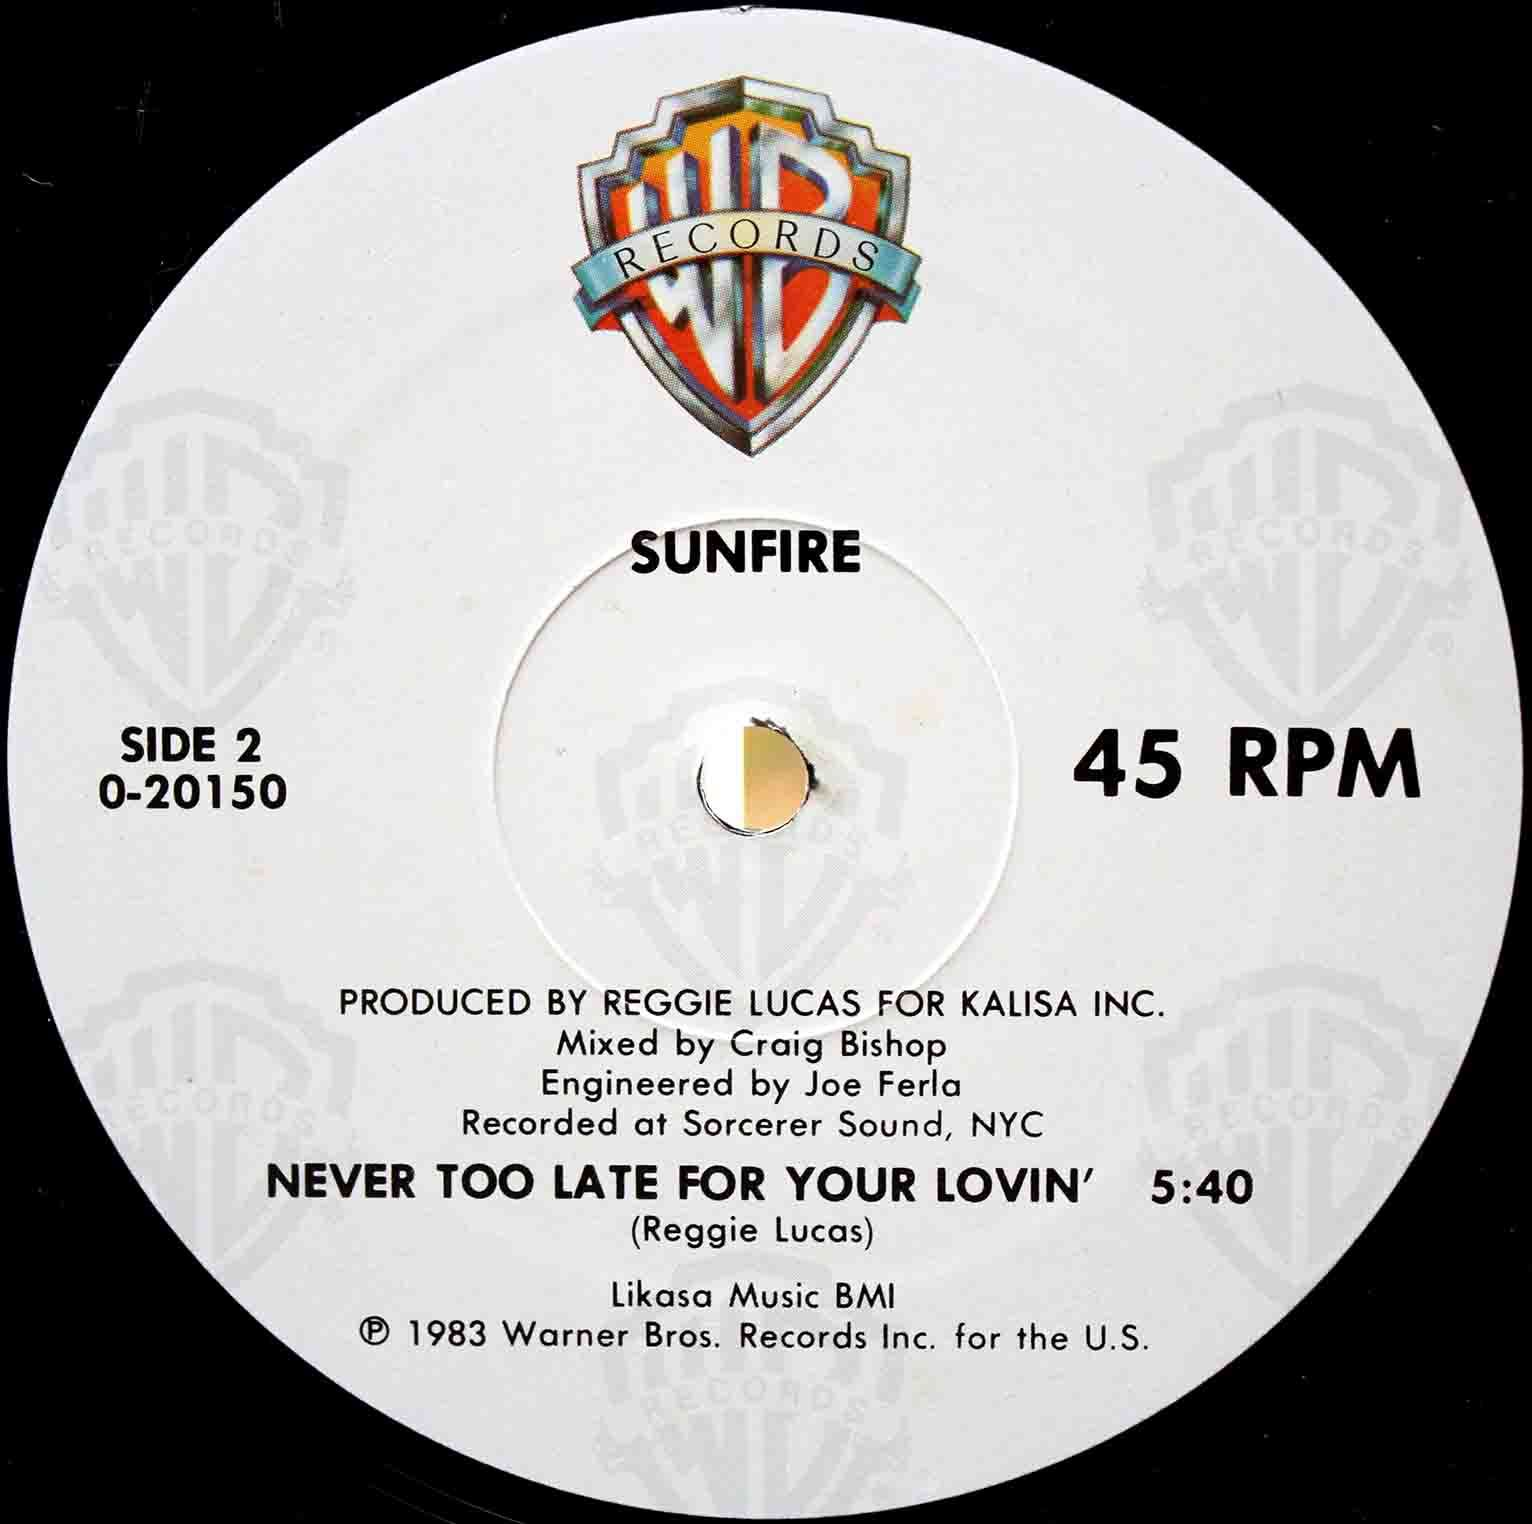 Sunfire Never Too Late For Your Lovin 04